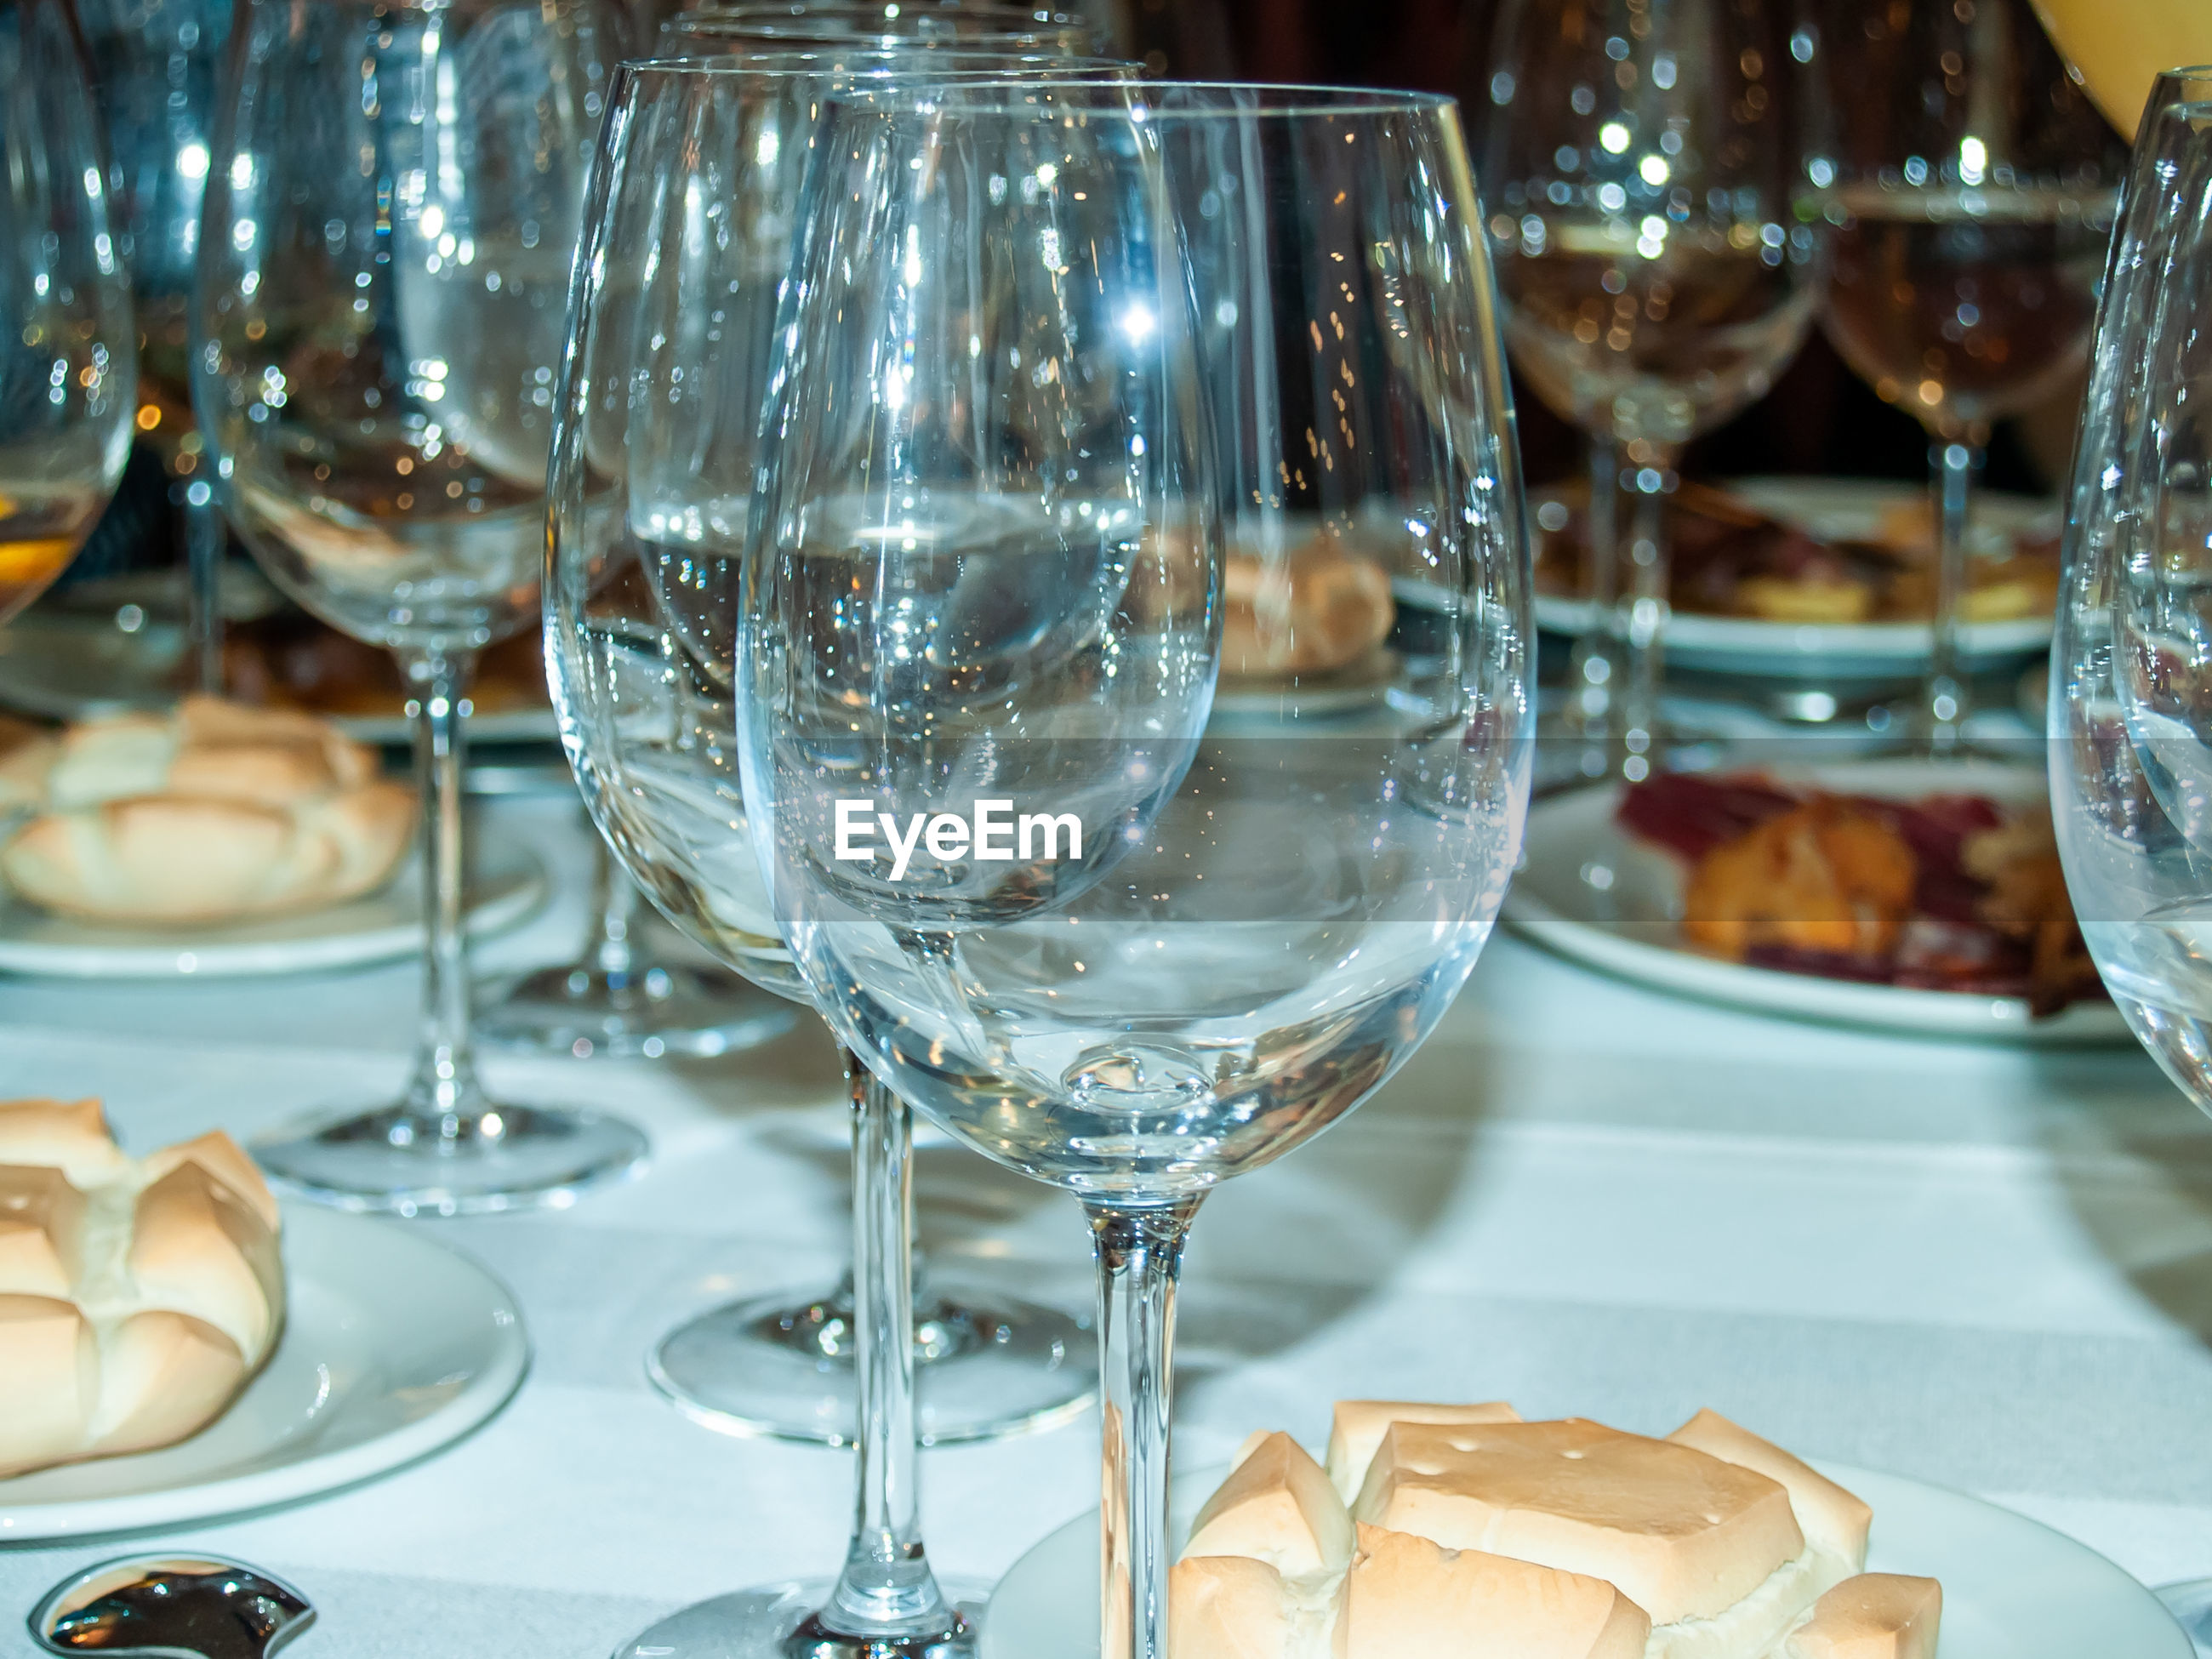 CLOSE-UP OF WINE GLASSES ON GLASS TABLE